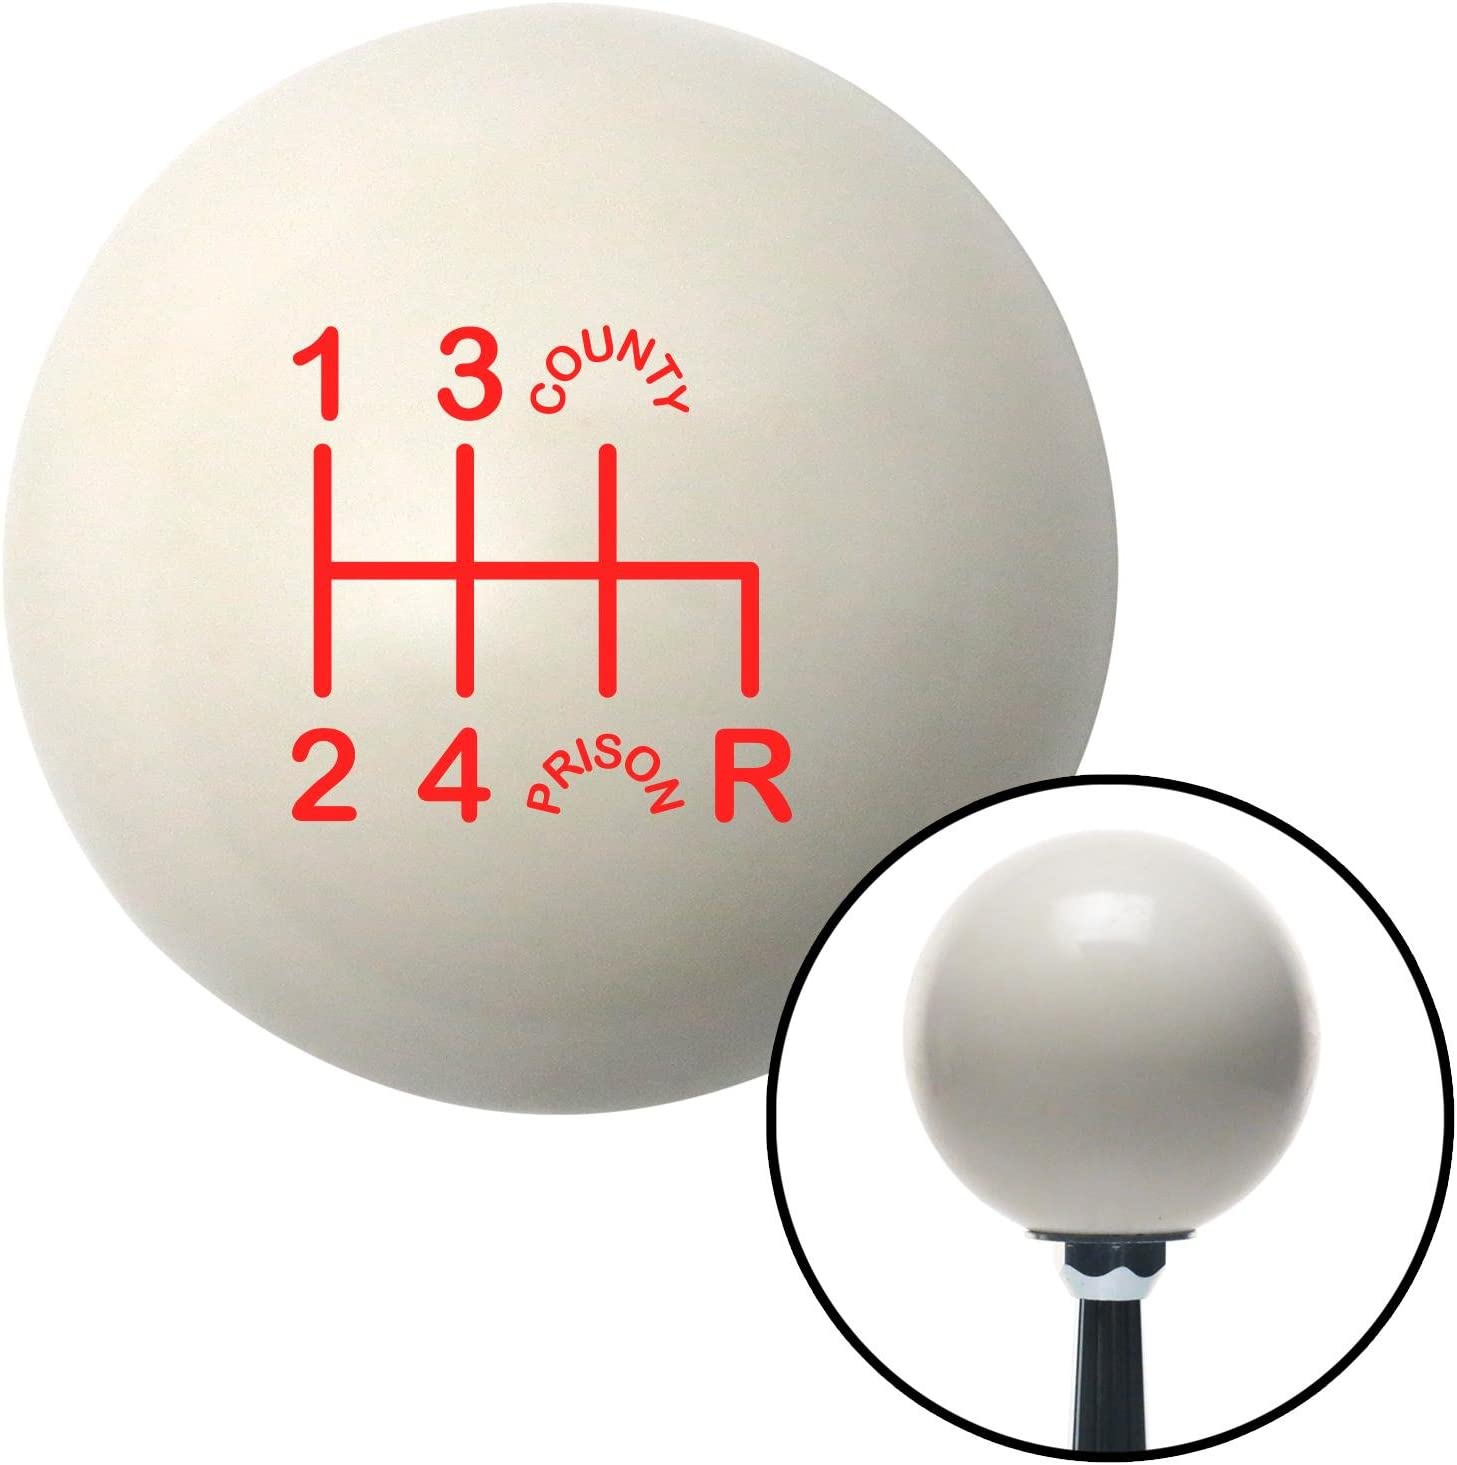 Red Shift Pattern CP41n American Shifter 76964 Ivory Shift Knob with M16 x 1.5 Insert